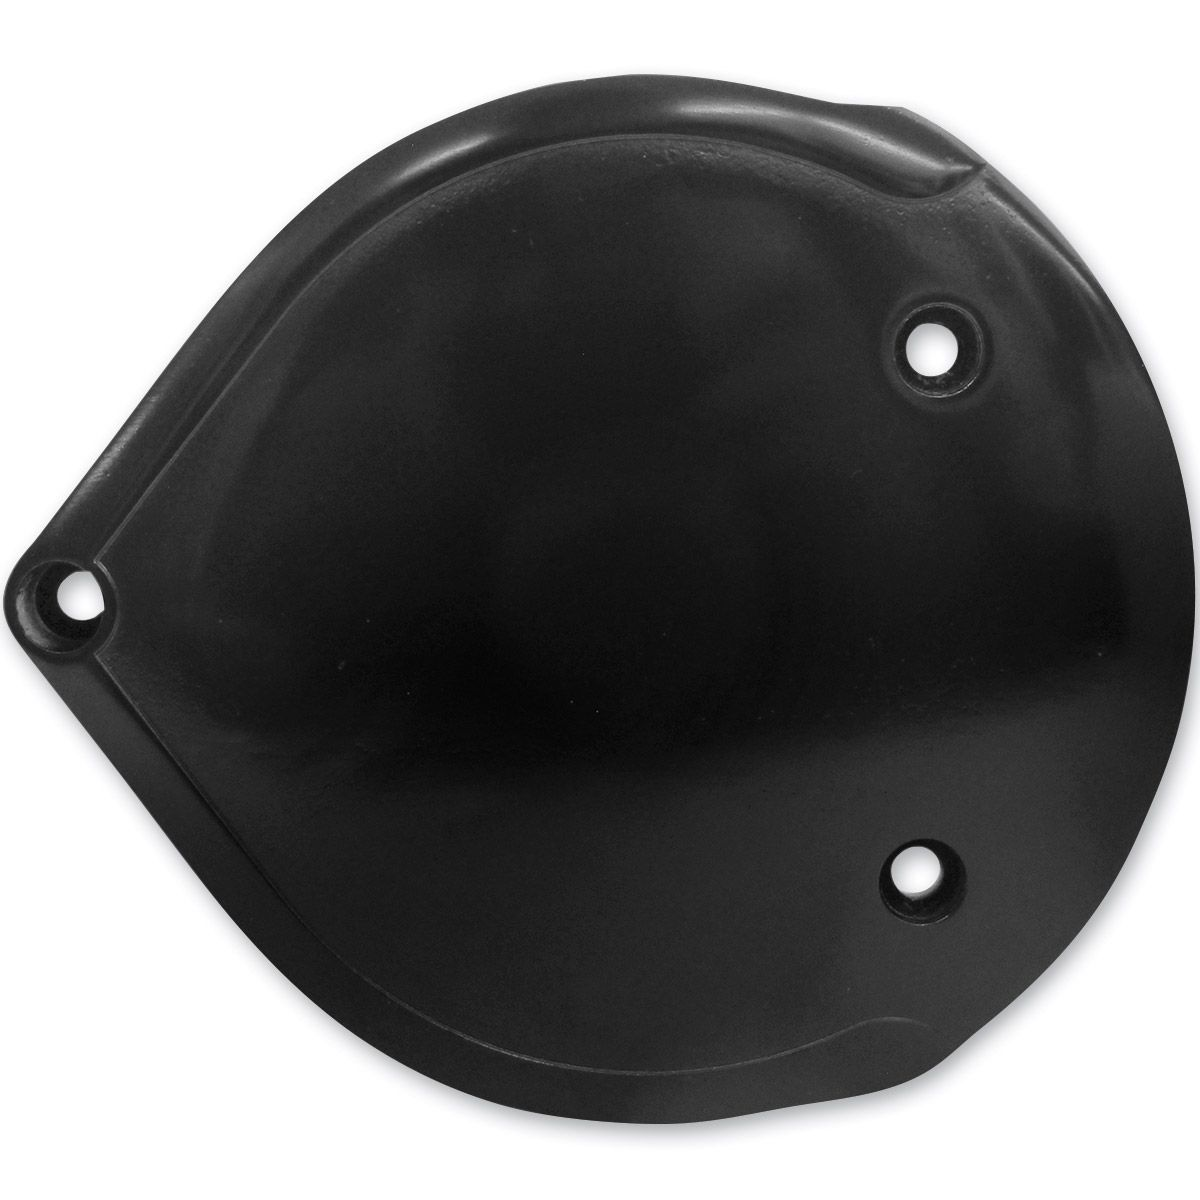 Lowbrow Customs Black Smooth Cast Air Cleaner Cover | 743-844